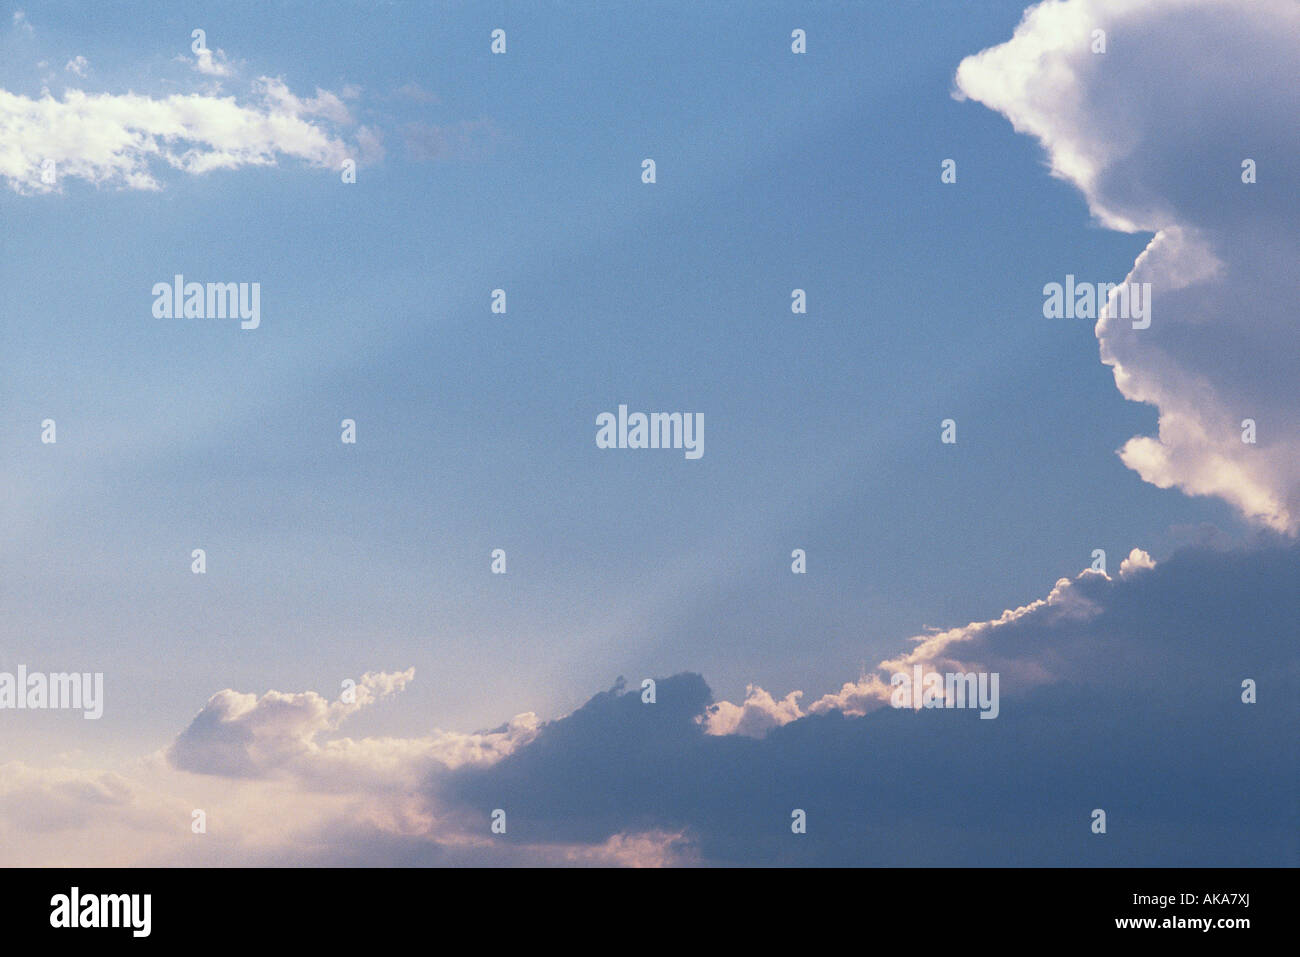 Skyscape with clouds and beams of sunlight - Stock Image